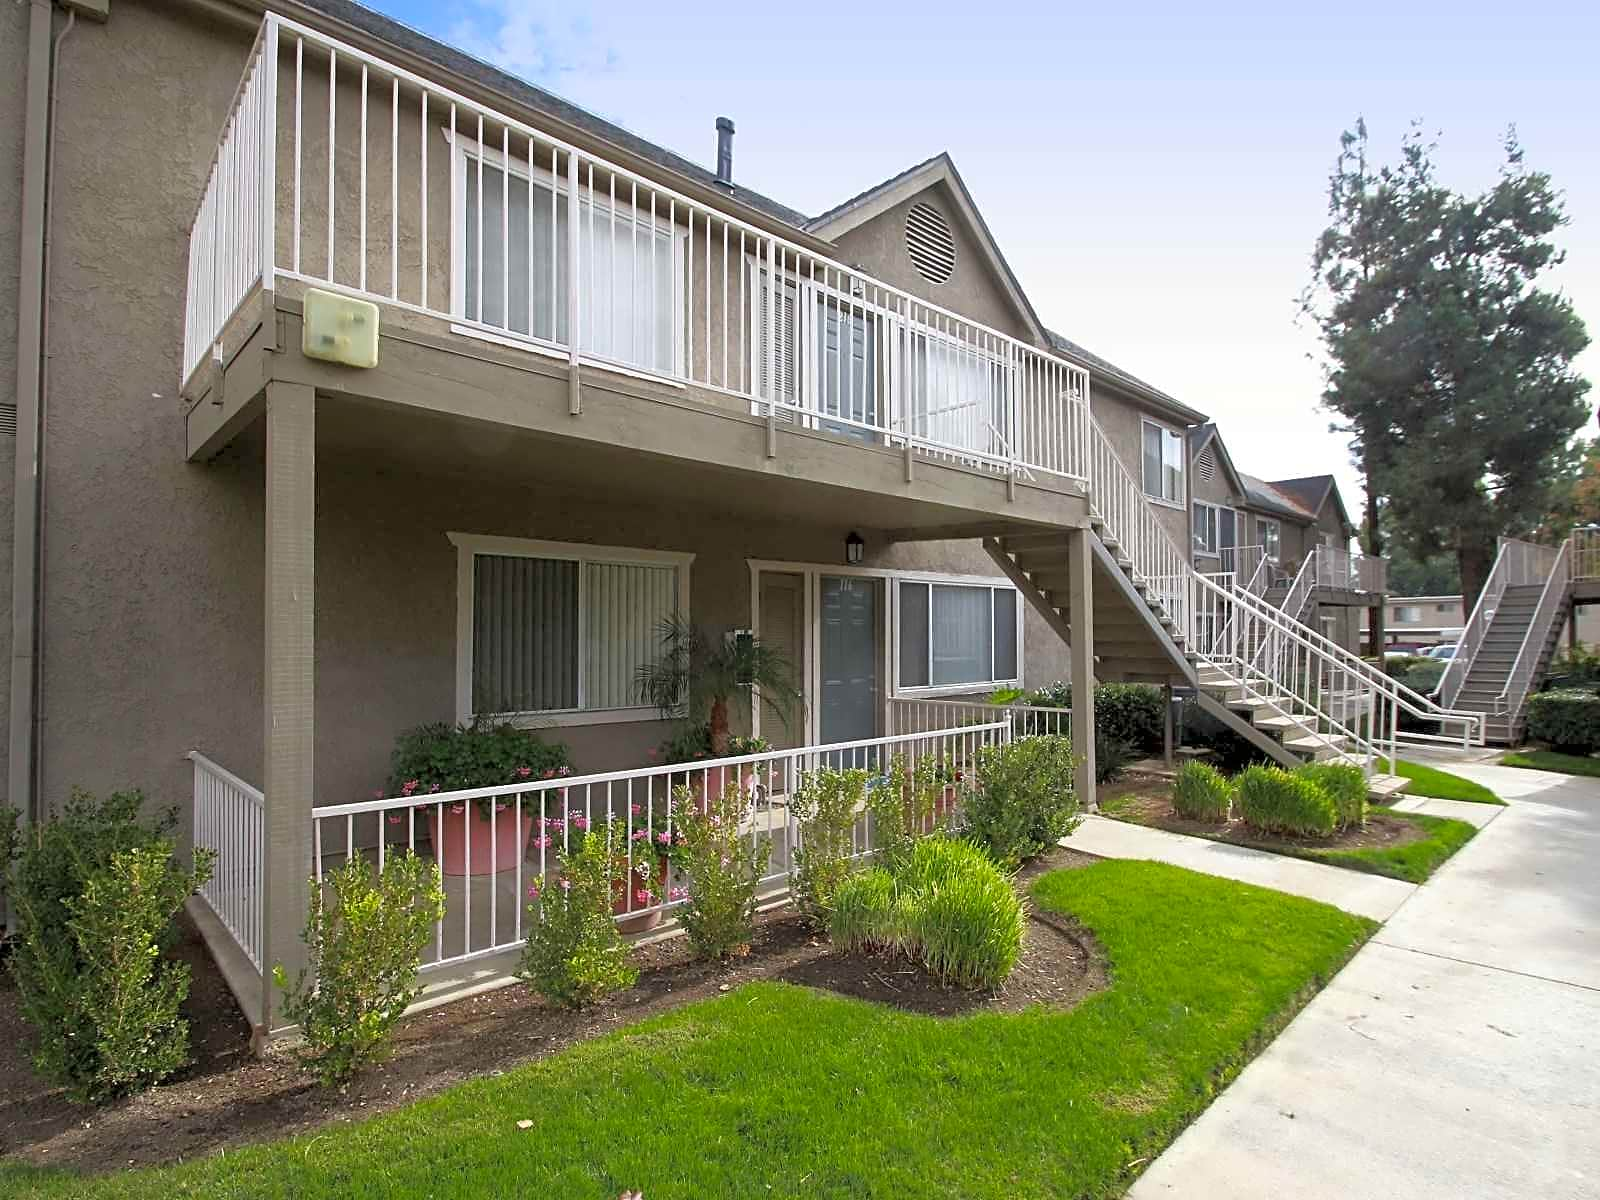 Mountain View for rent in Moreno Valley